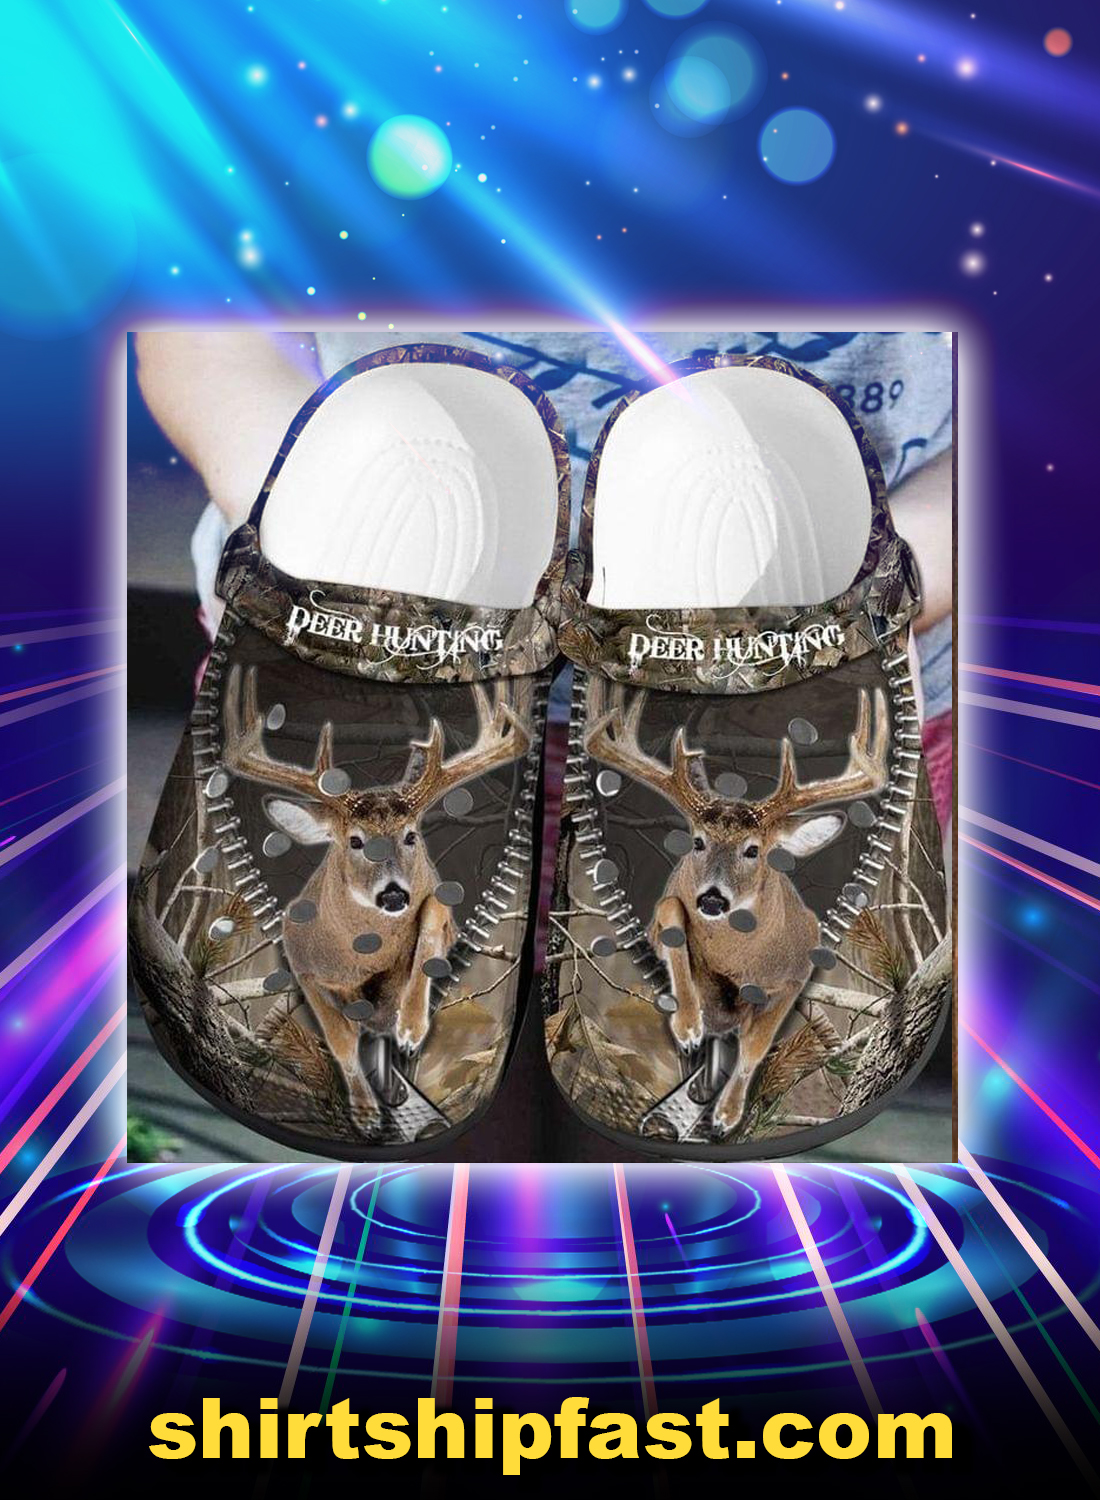 Deer hunting crocband crocs shoes - Picture 1